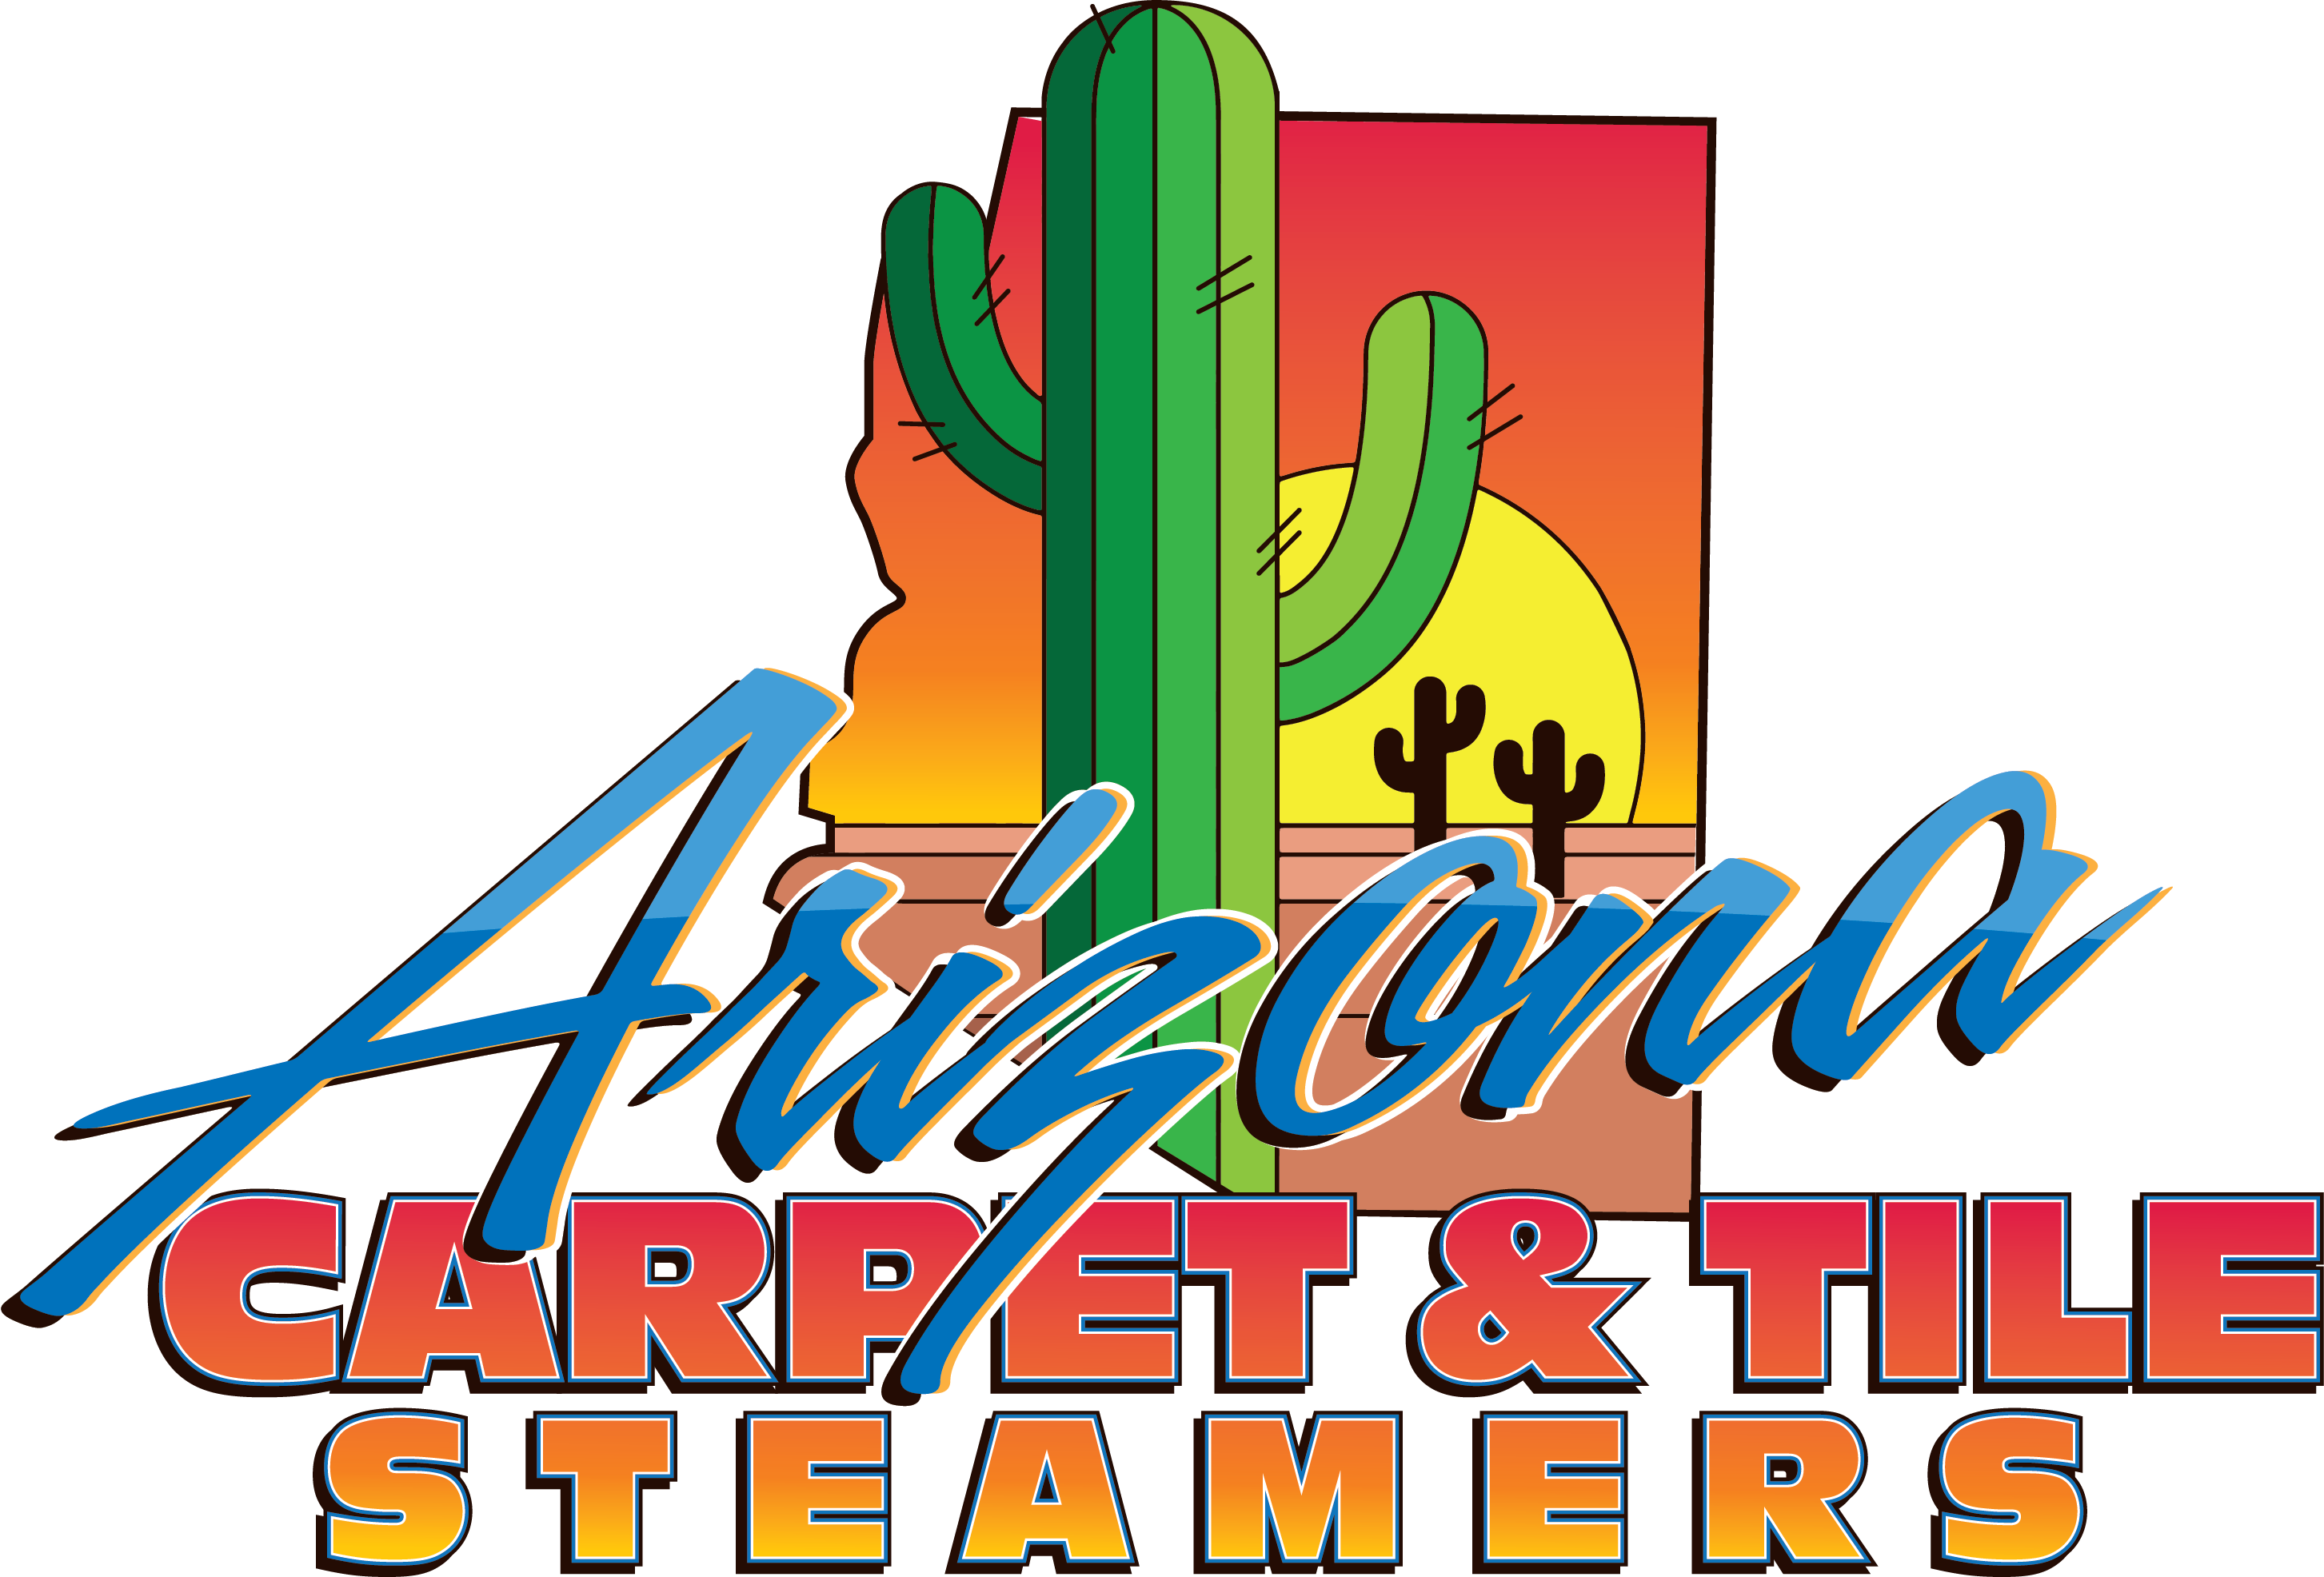 Arizona Carpet & Tile Steamers mesa az